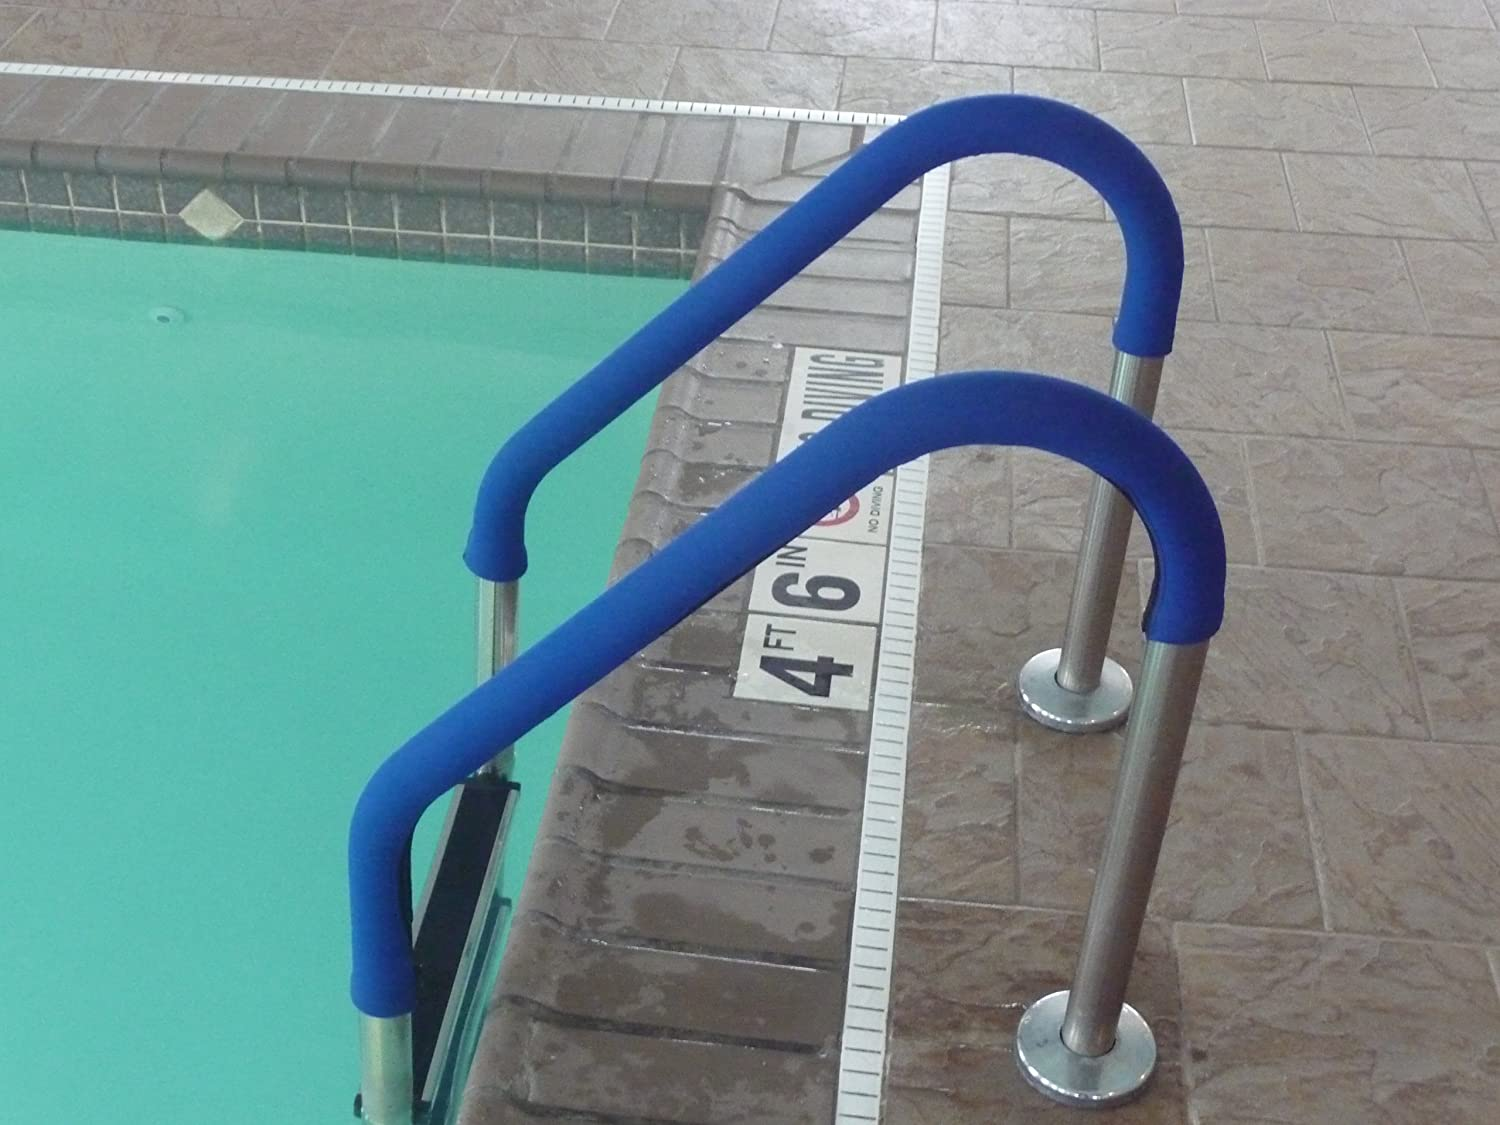 Rail Grips Osrg 6rb Swimming Pool Hand Rail Cover 6 Feet